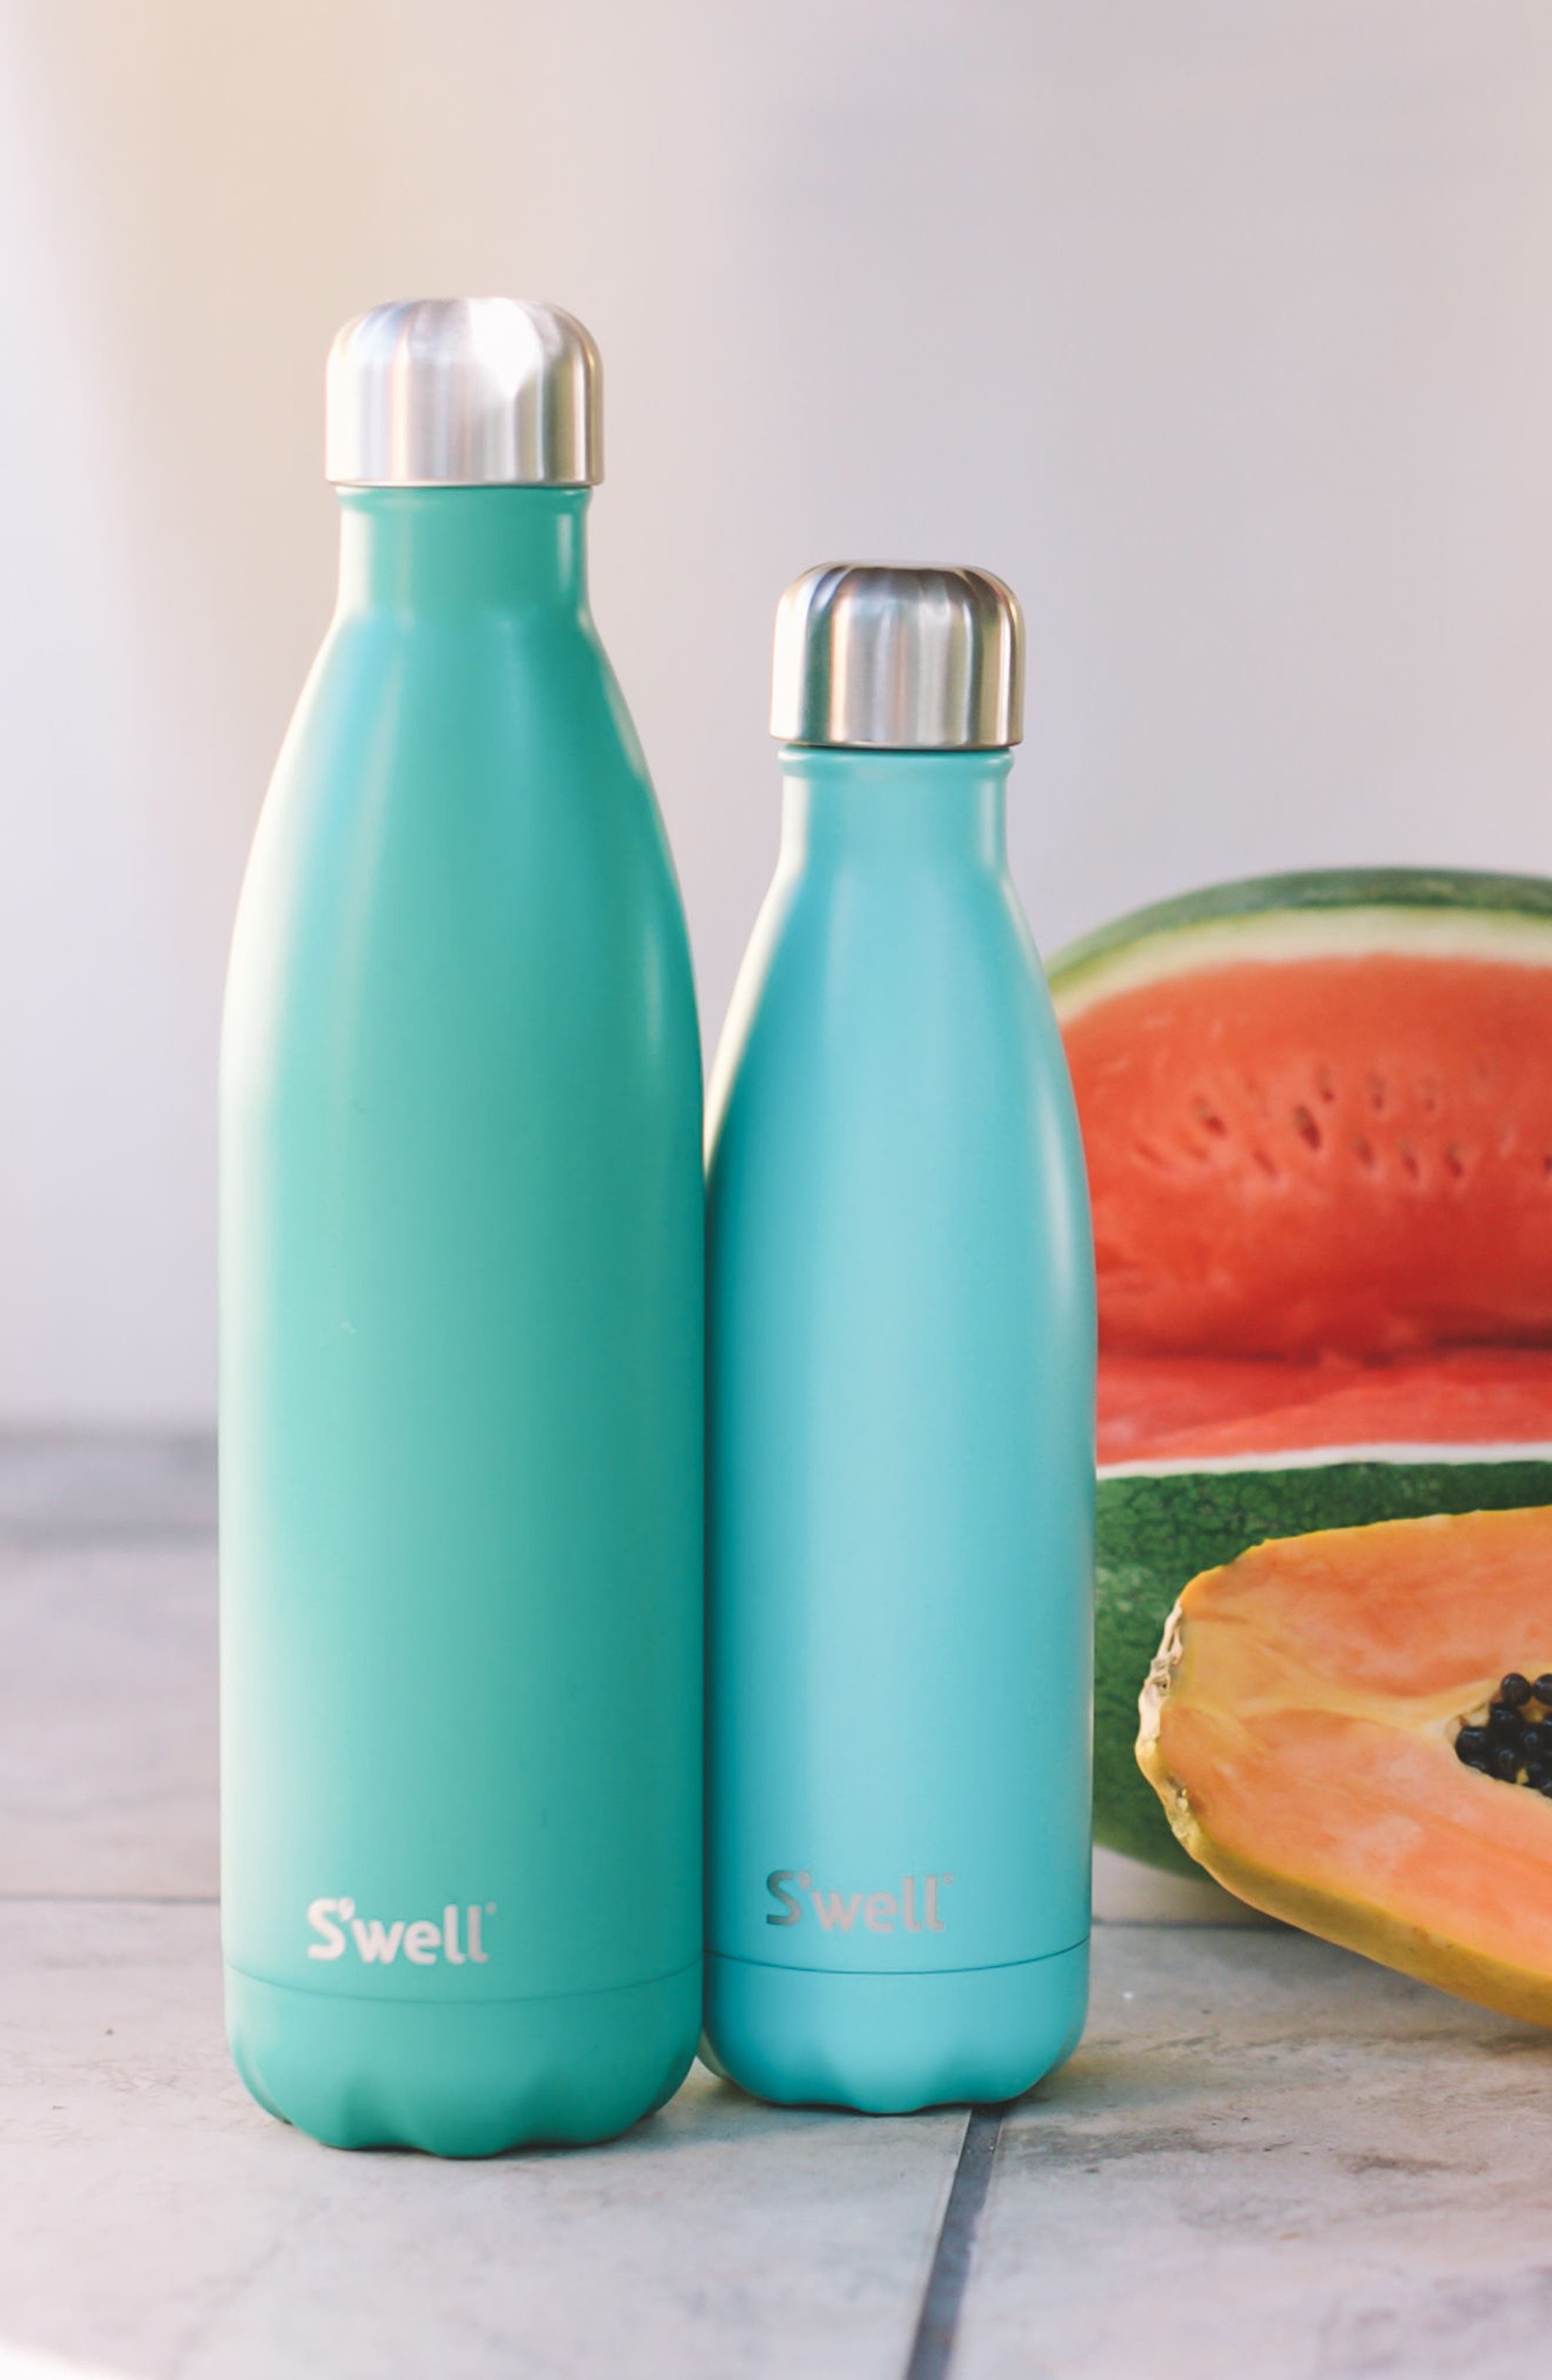 S'WELL,                             'Turquoise Blue' Stainless Steel Water Bottle,                             Alternate thumbnail 2, color,                             440